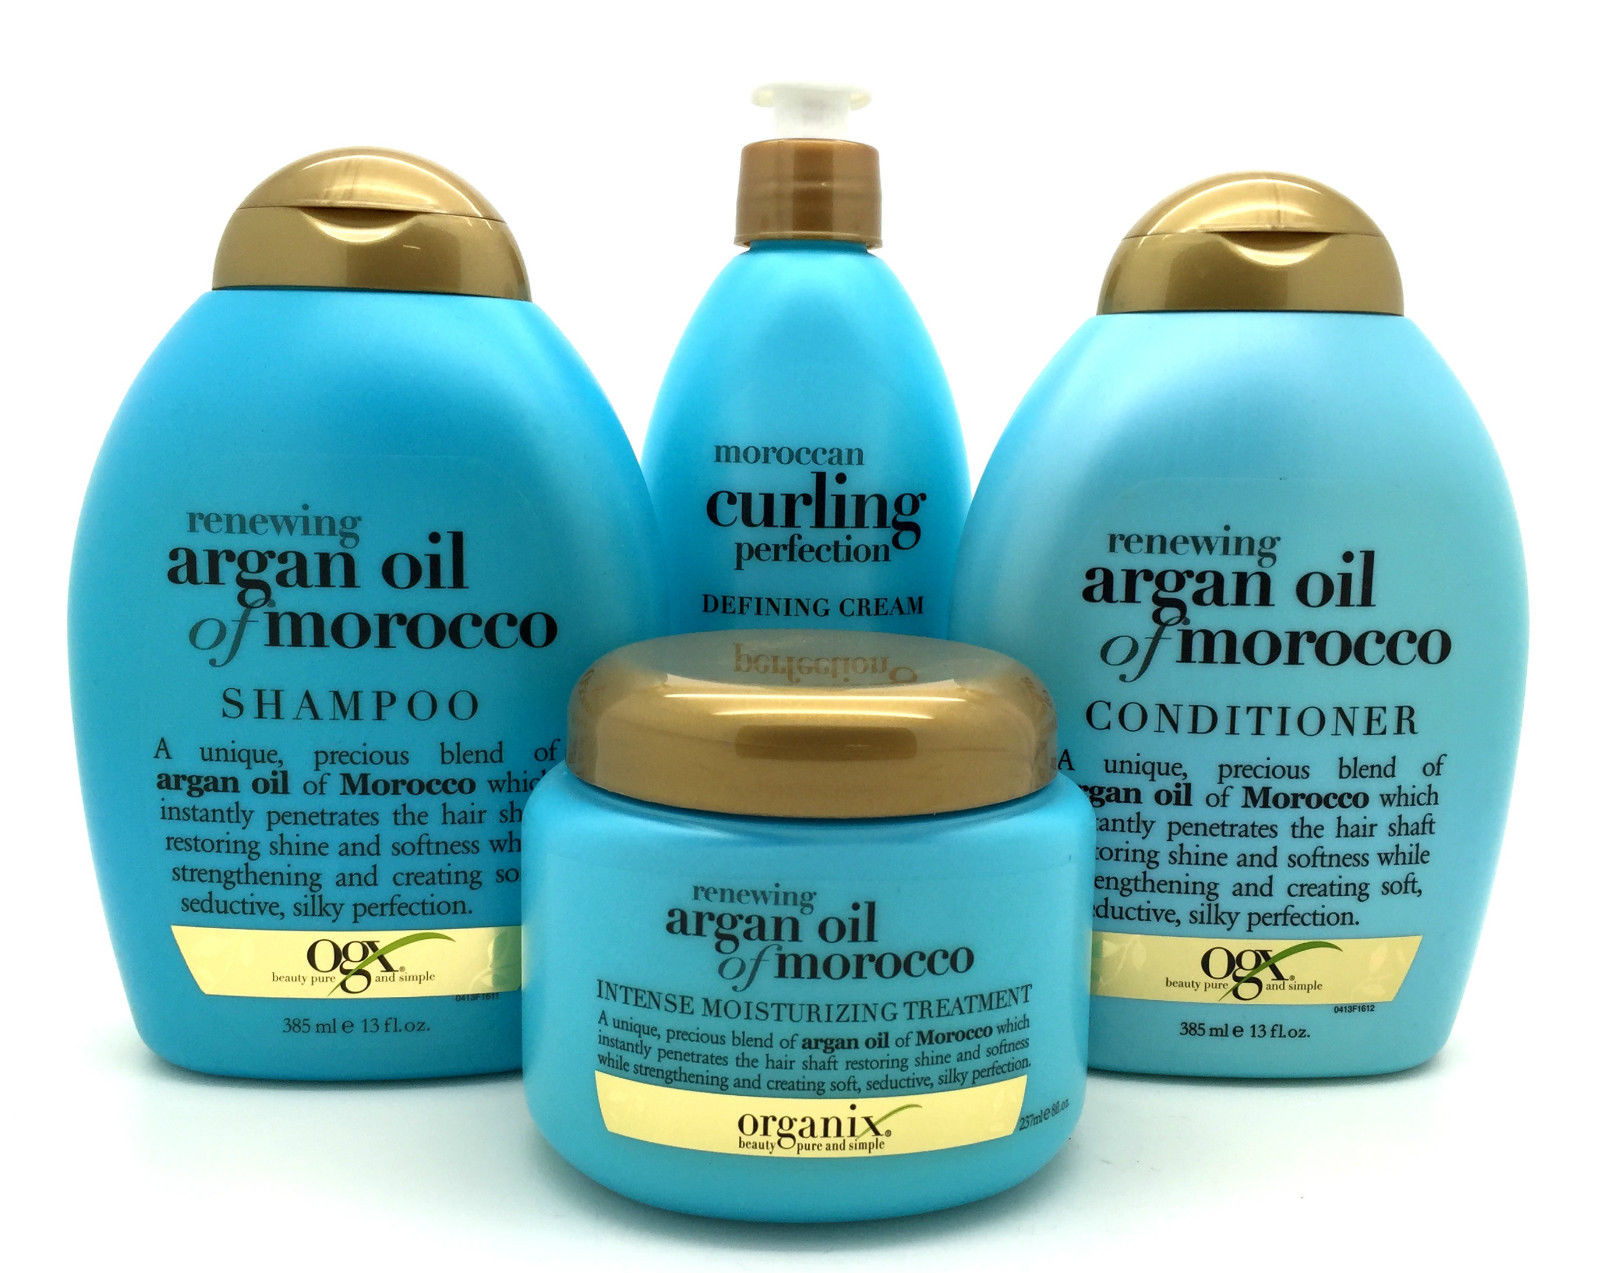 Organix Argan Oil From Morocco Hair Products For Dry